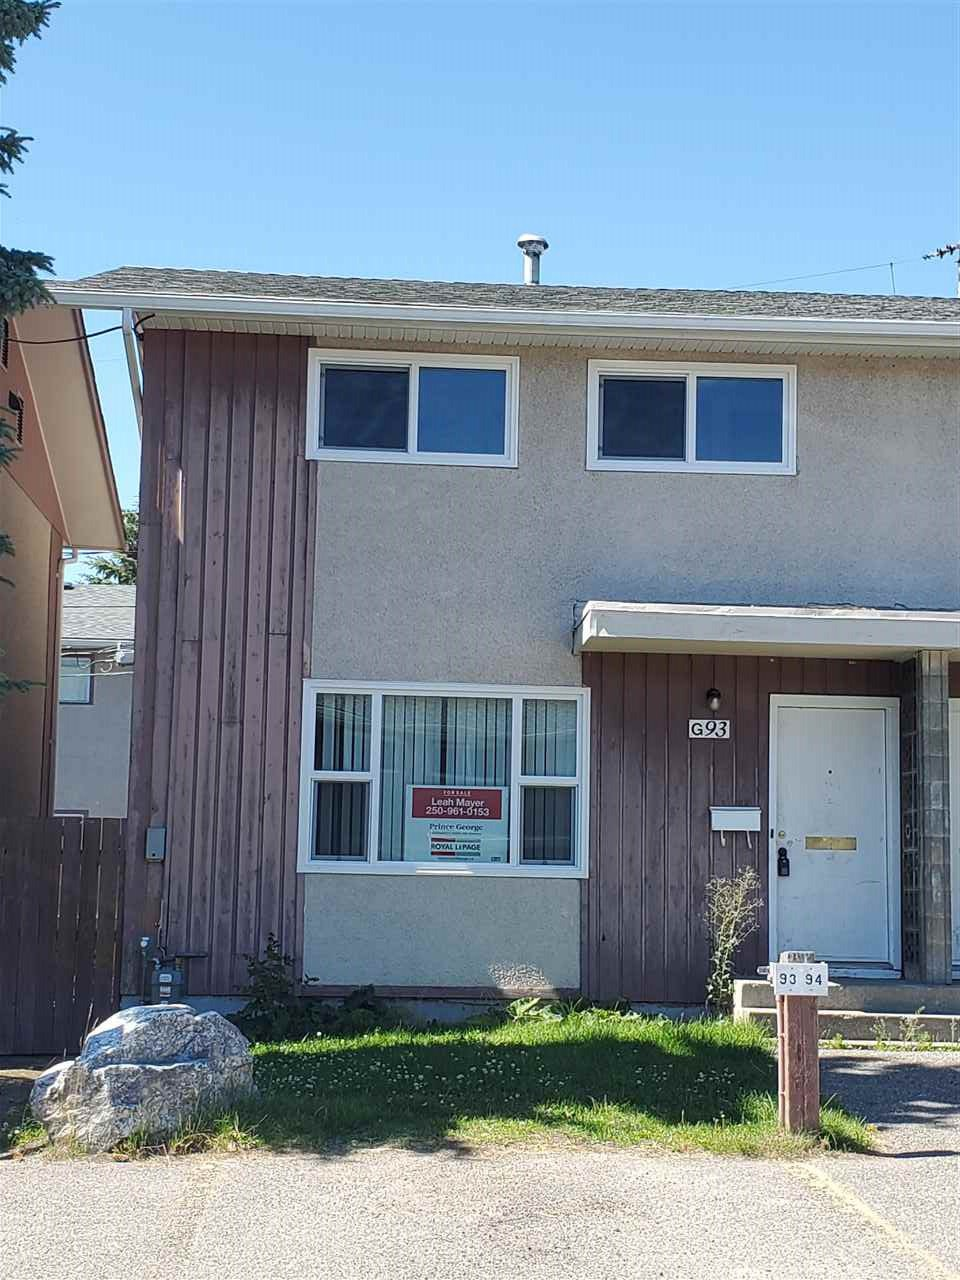 """Main Photo: G93 1900 STRATHCONA Avenue in Prince George: VLA Townhouse for sale in """"ALPINE VILLAGE"""" (PG City Central (Zone 72))  : MLS®# R2481964"""